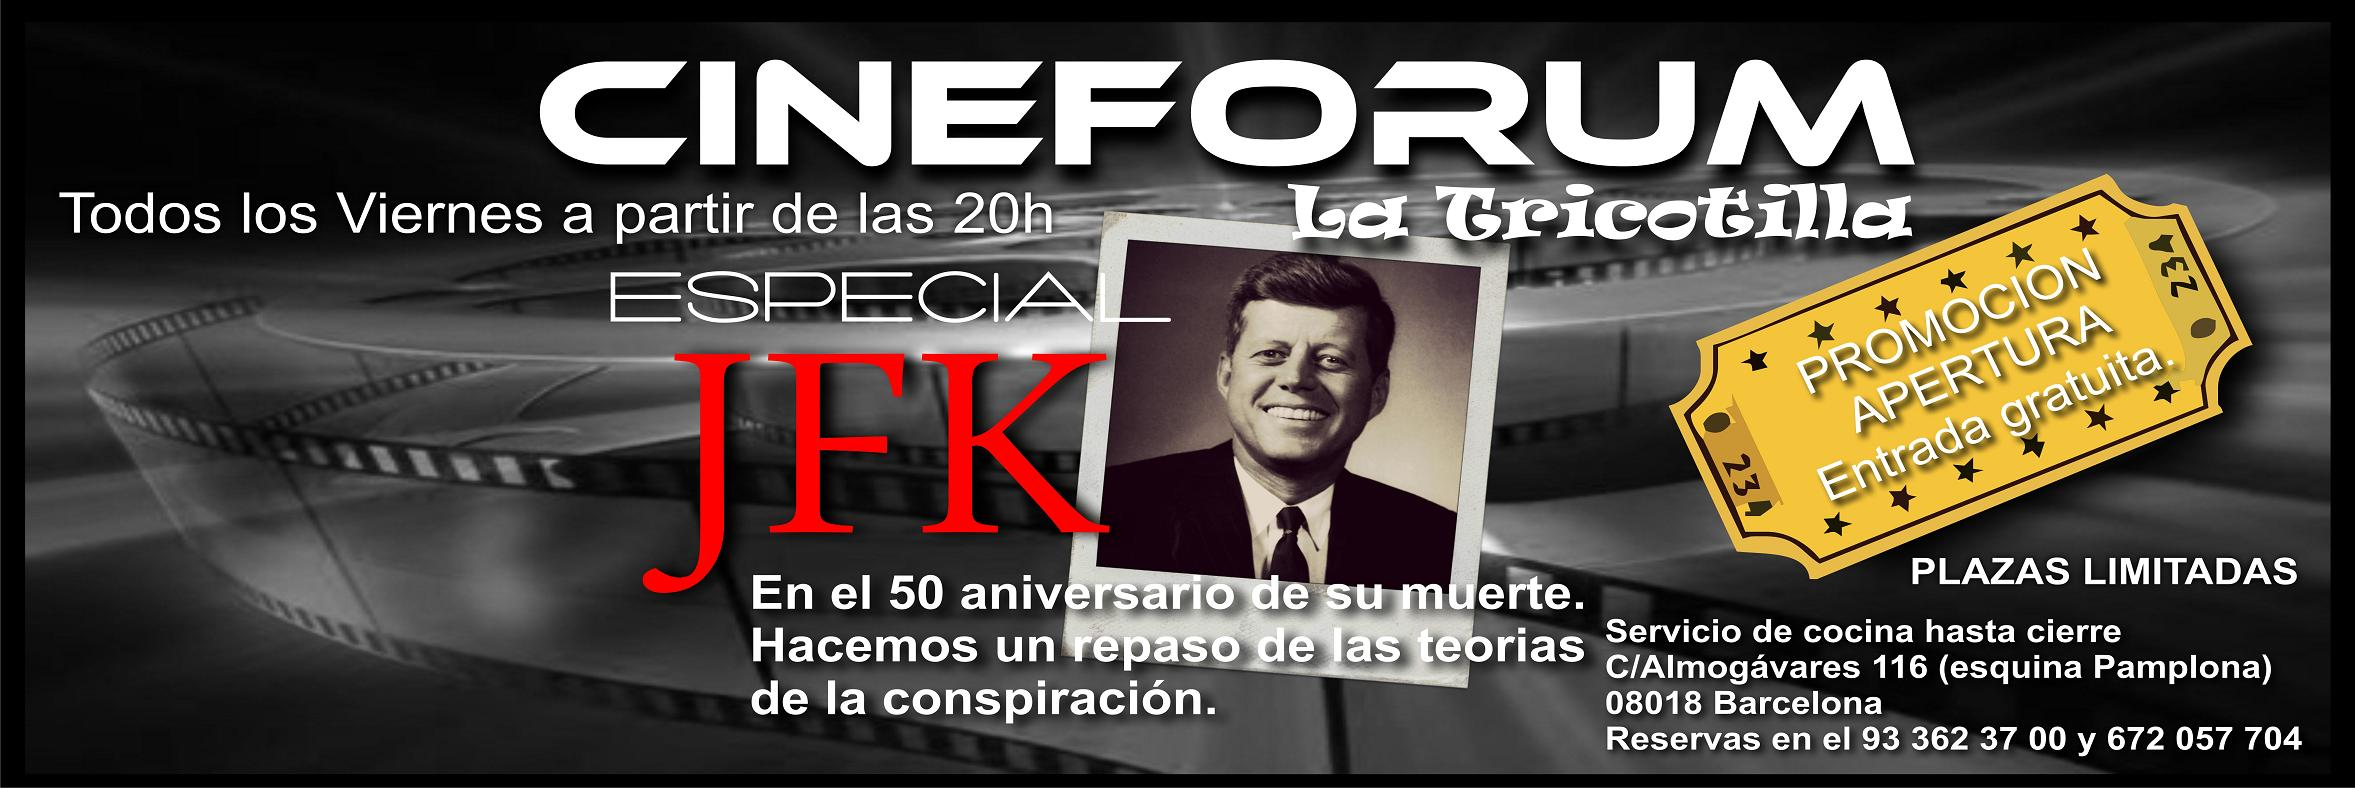 cineforum JFK.